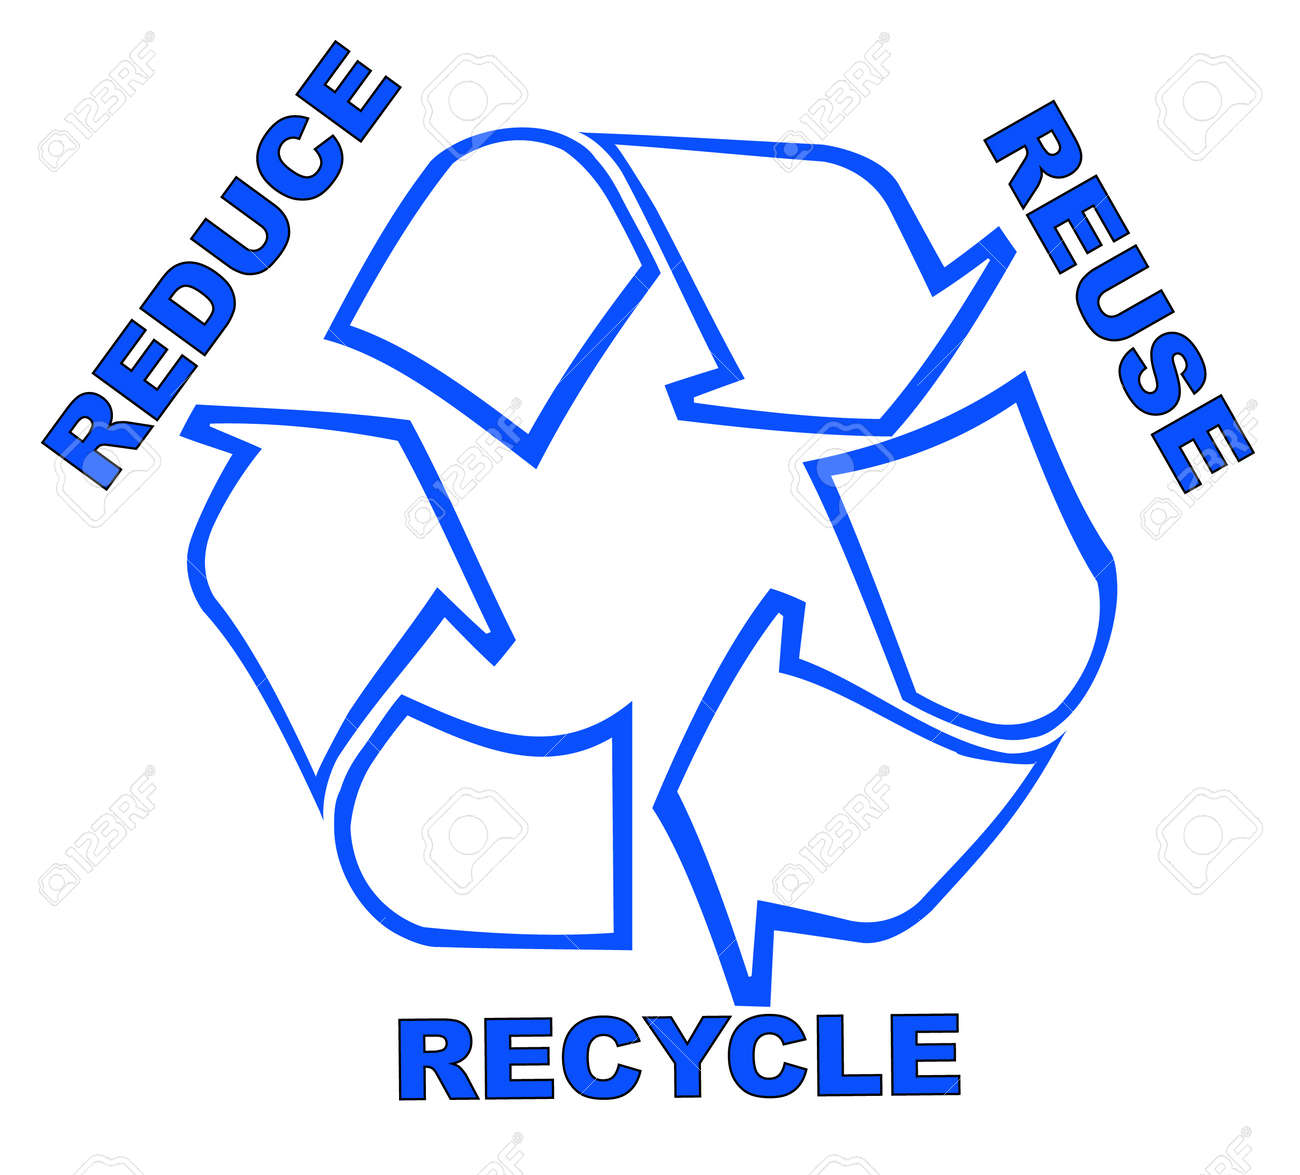 Recycle Symbol With Words Reduce Reuse Recycle Royalty Free Cliparts